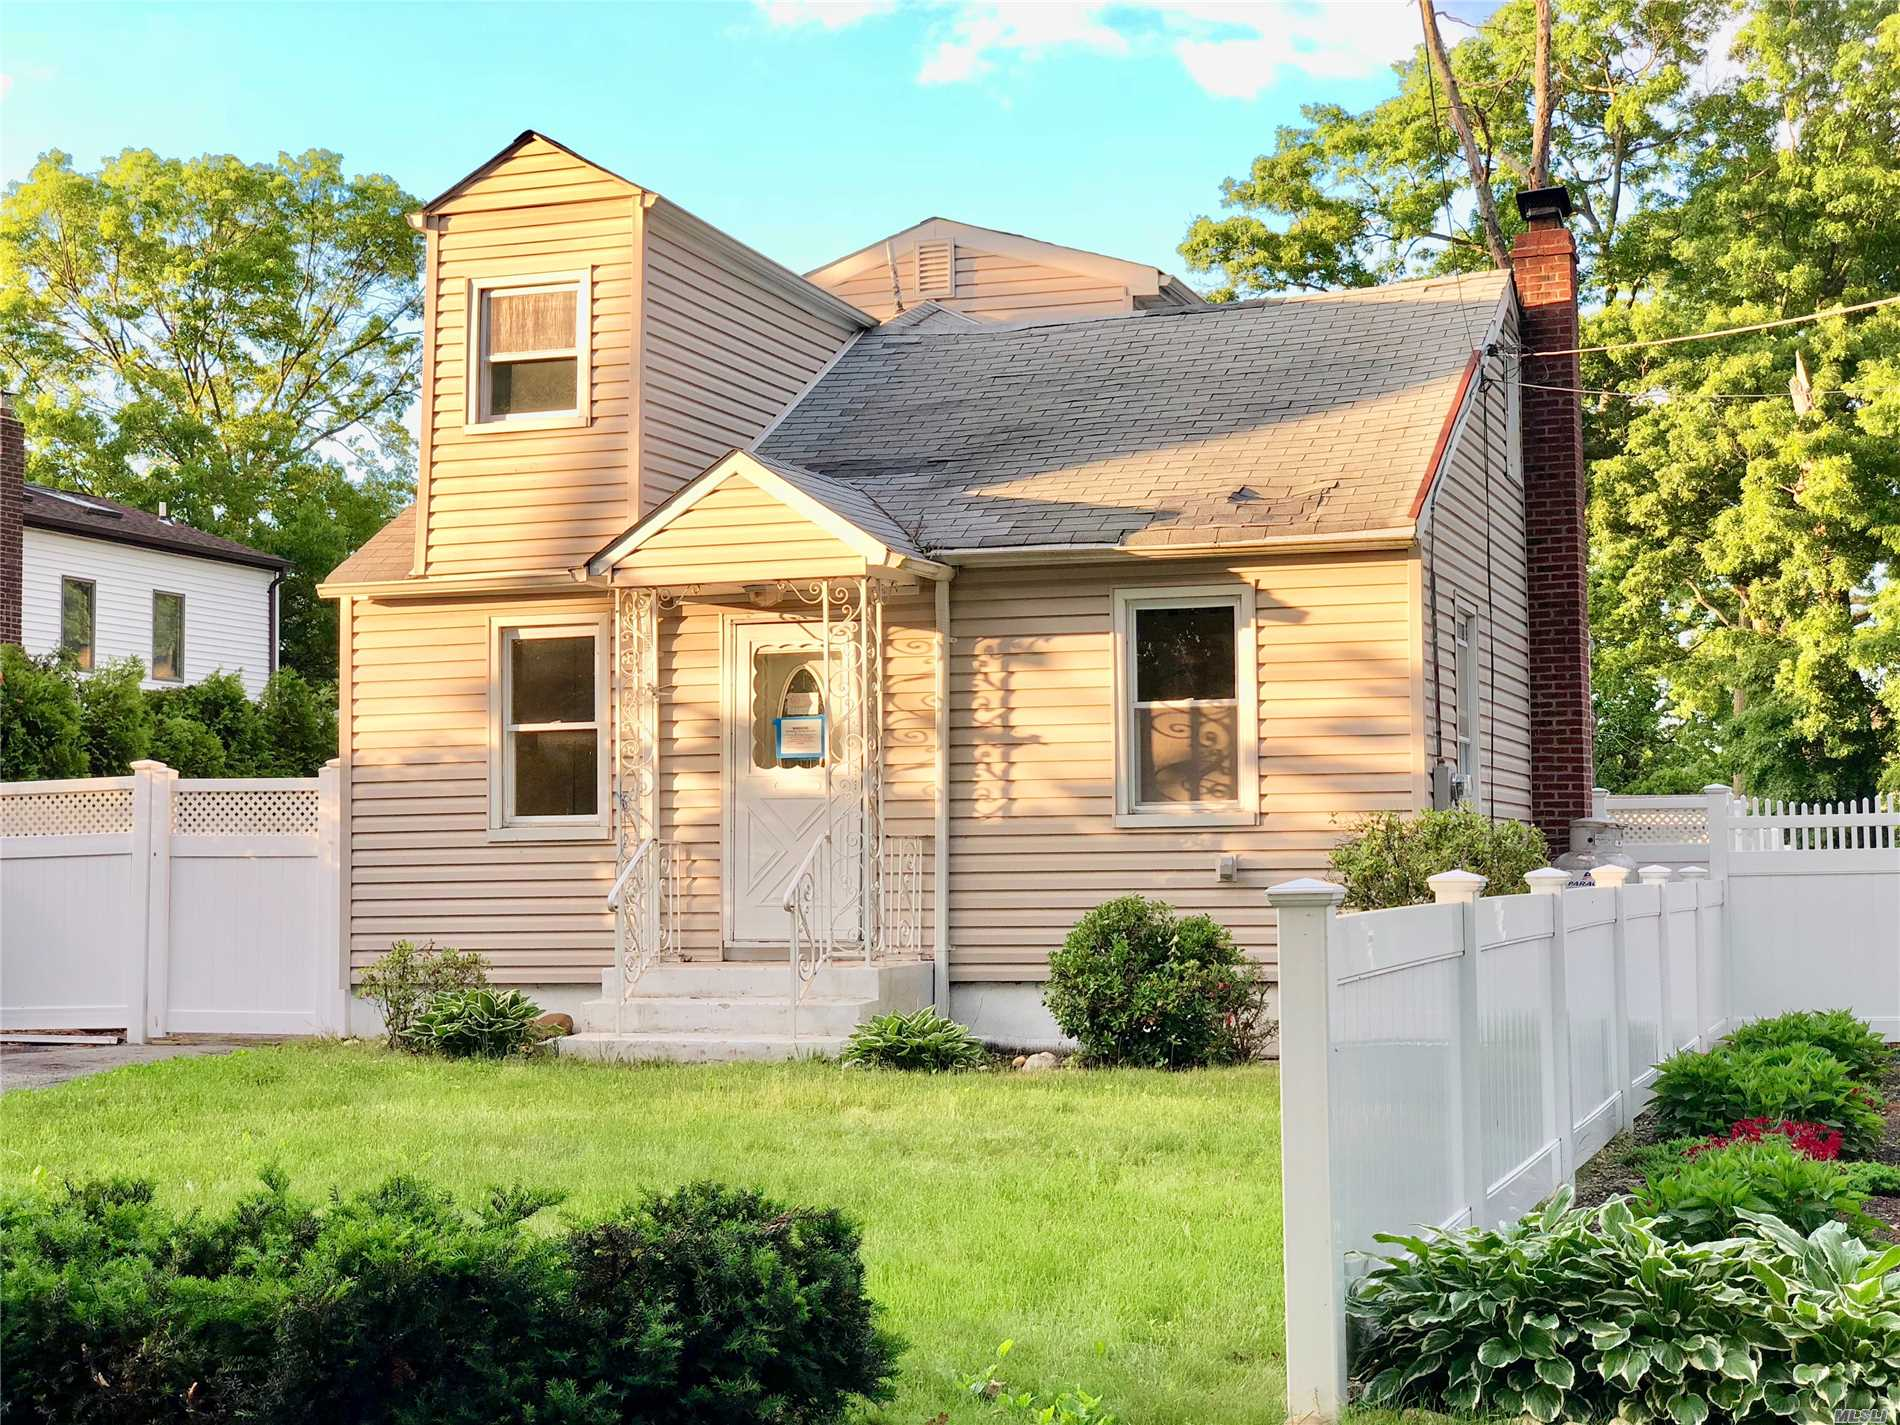 Photo of home for sale at 375 Woodlawn Ave, Ronkonkoma NY